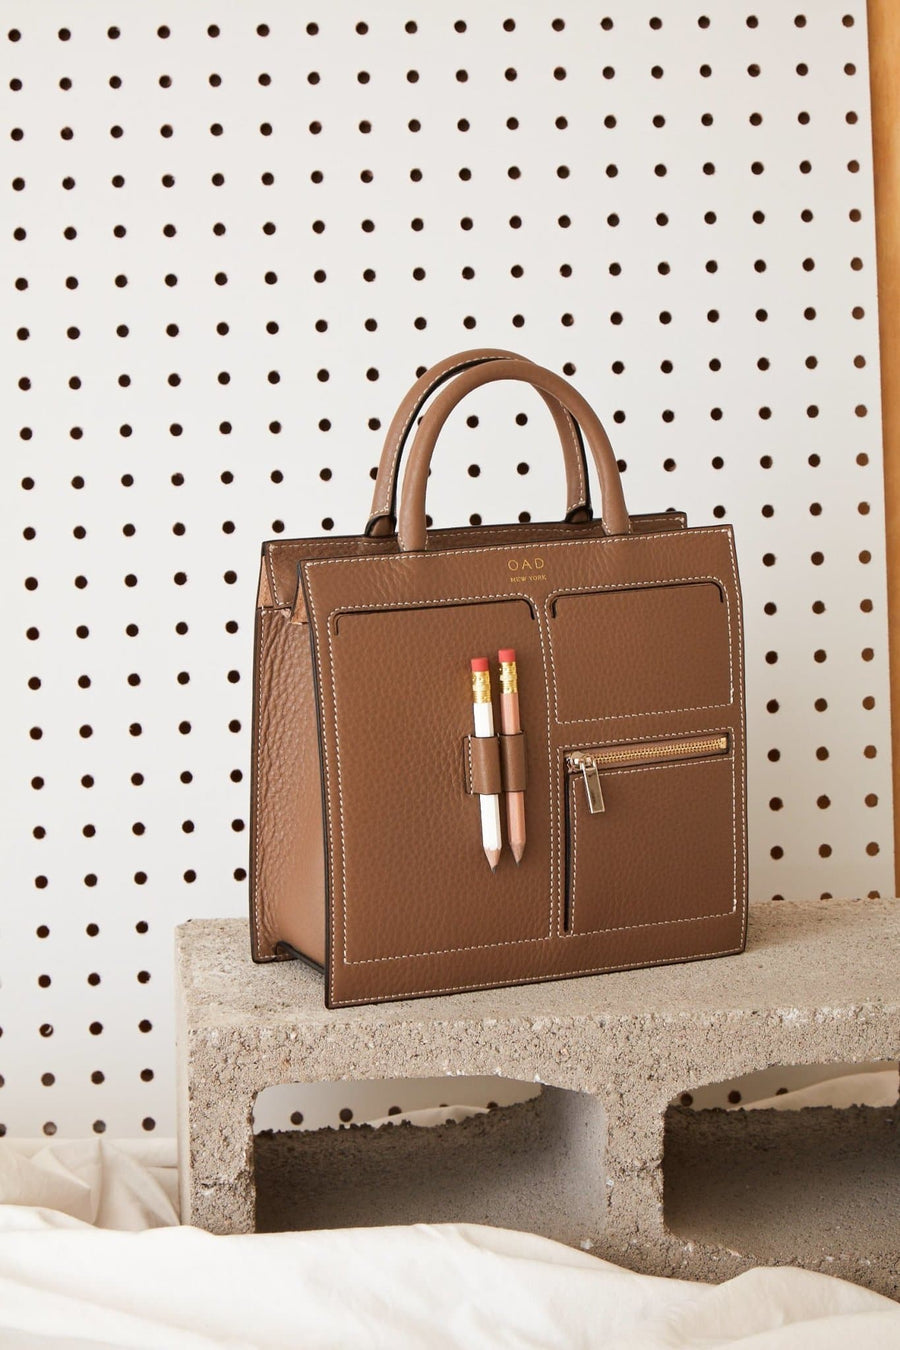 C Mini Kit Zip Satchel - Porcini - OAD NEW YORK